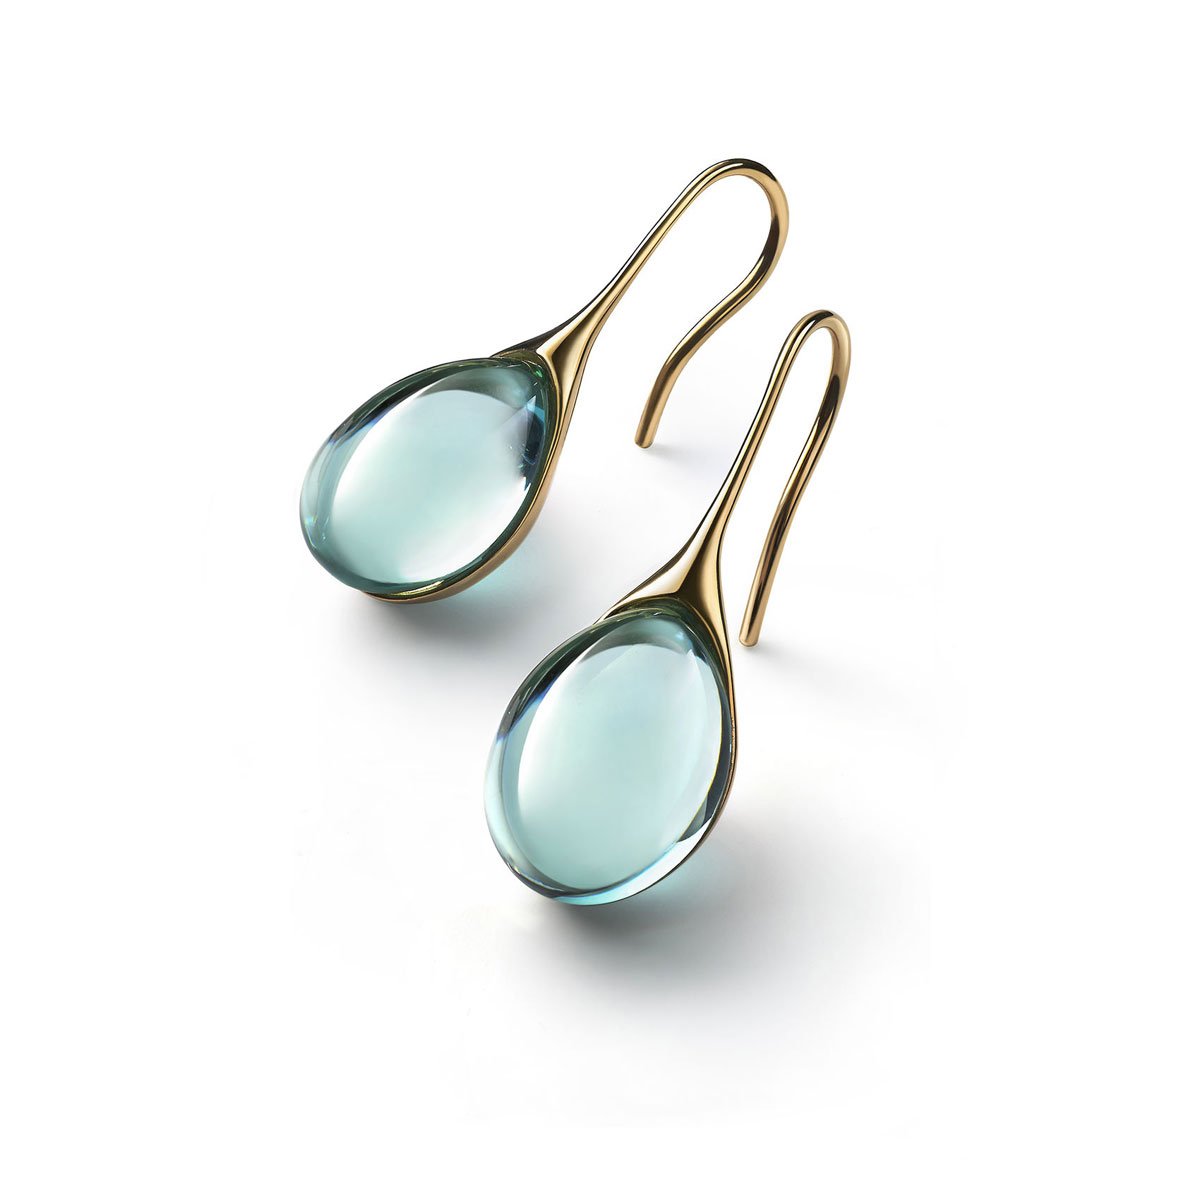 Baccarat Crystal Galea Wire Earrings Vermeil Gold Turquoise